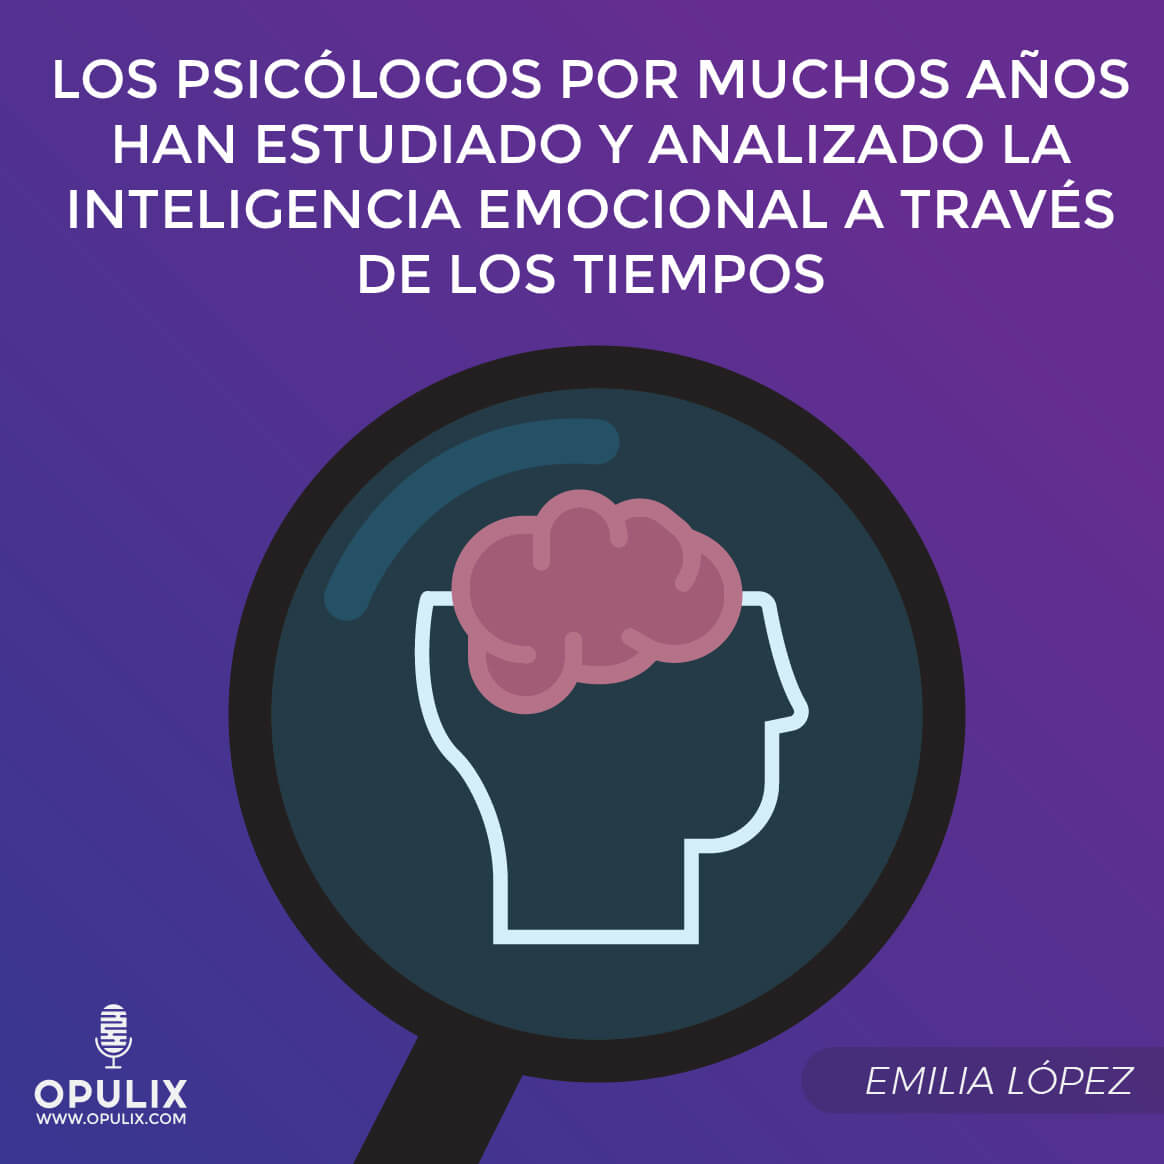 NeverTooLate para desarrollar inteligencia emocional